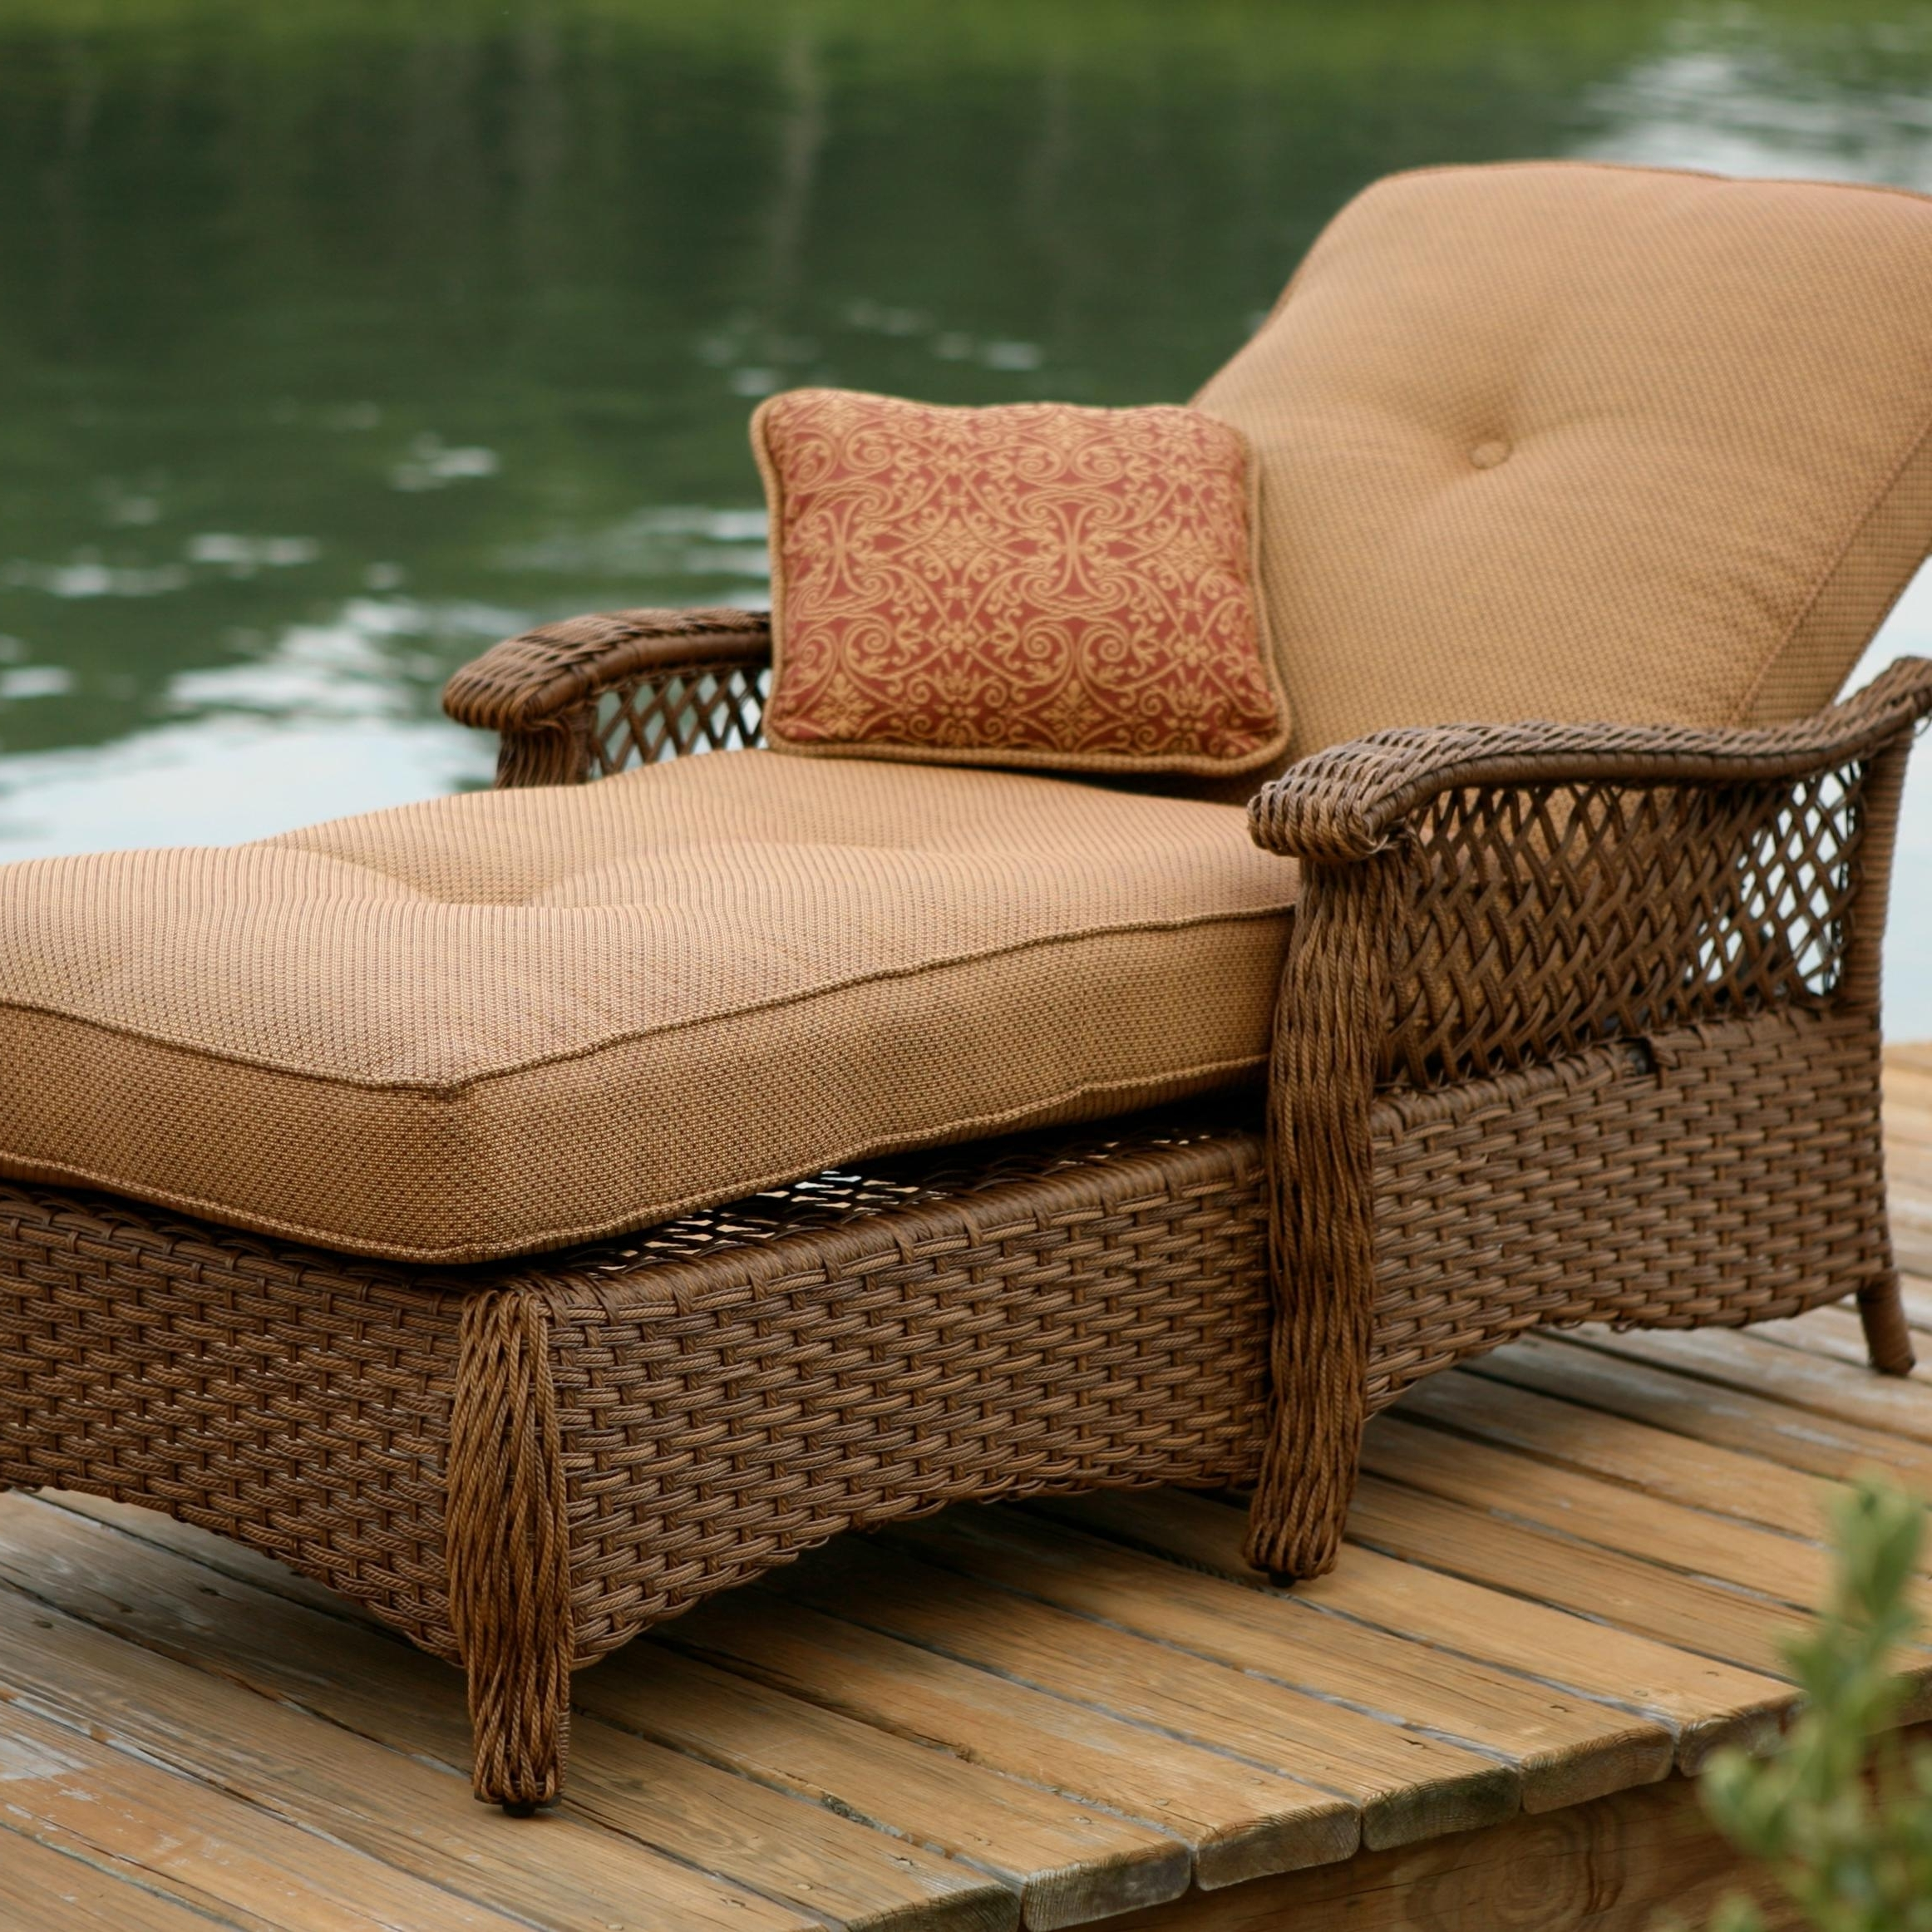 Most Popular Garden Chaise Lounge Chairs In Agio Veranda–Agio Outdoor Tan Woven Chaise Lounge Chair With Seat (View 8 of 15)